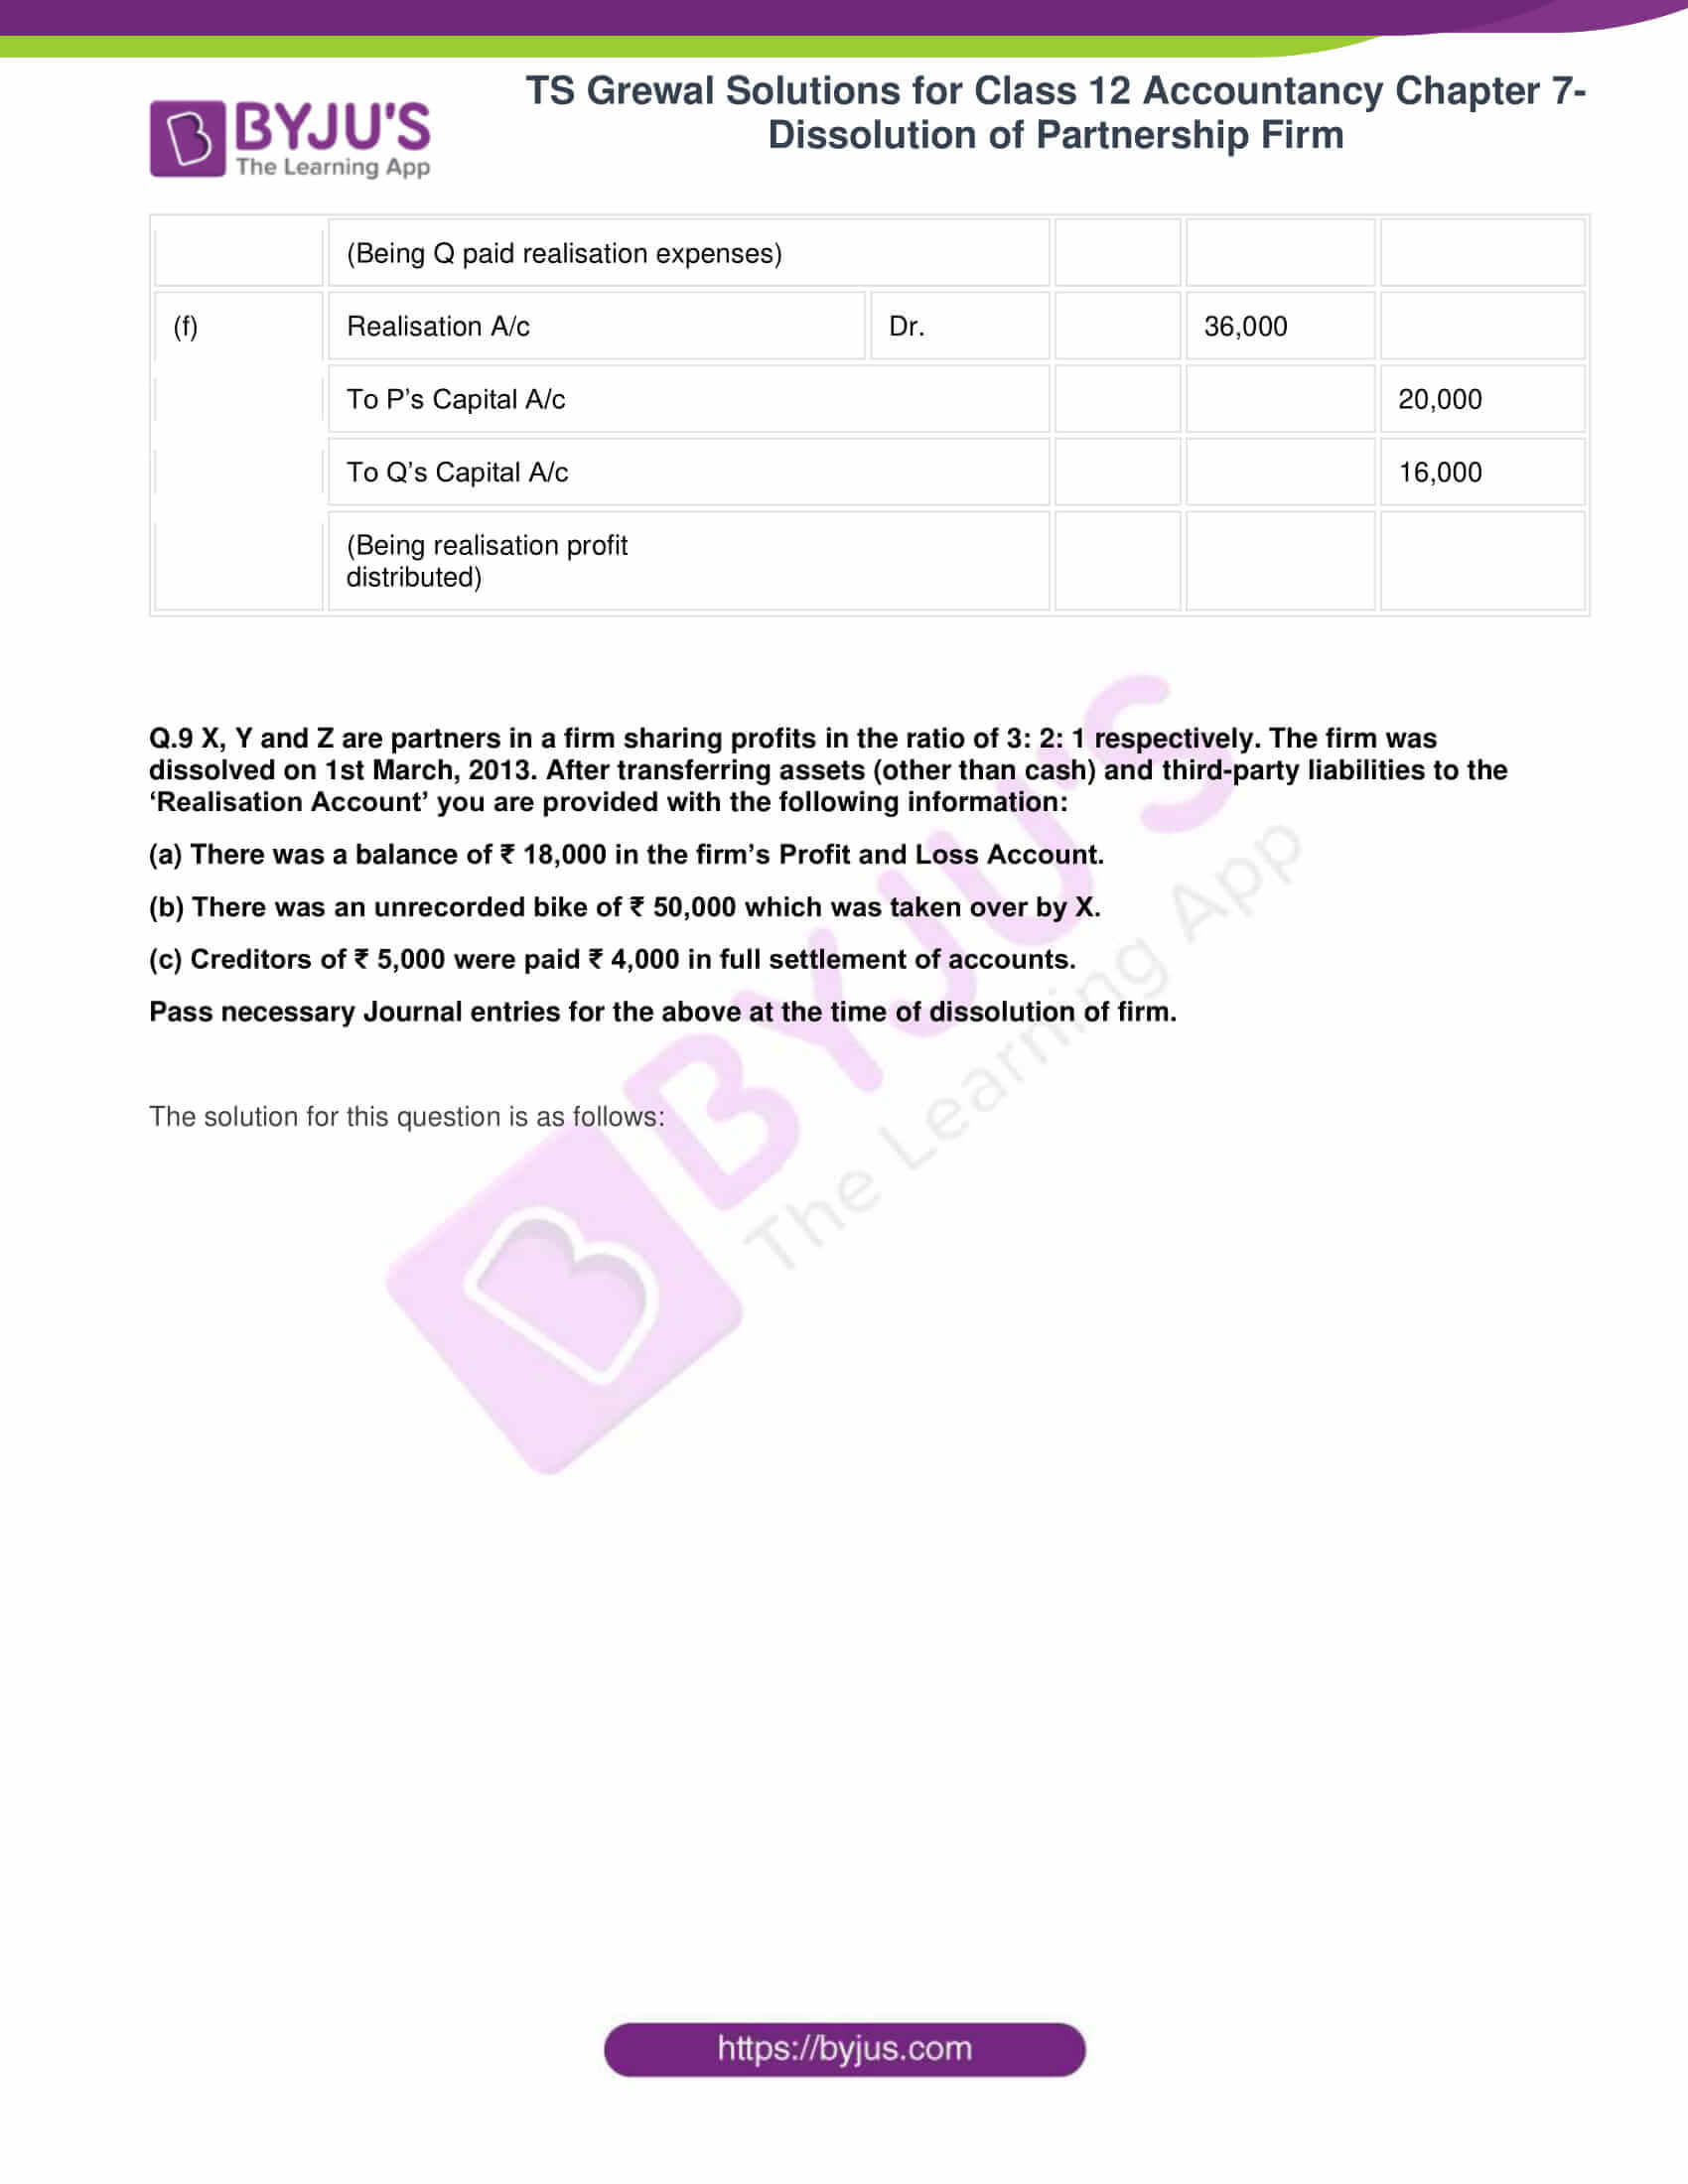 ts grewal solutions for class 12 accountancy chapter 7 09